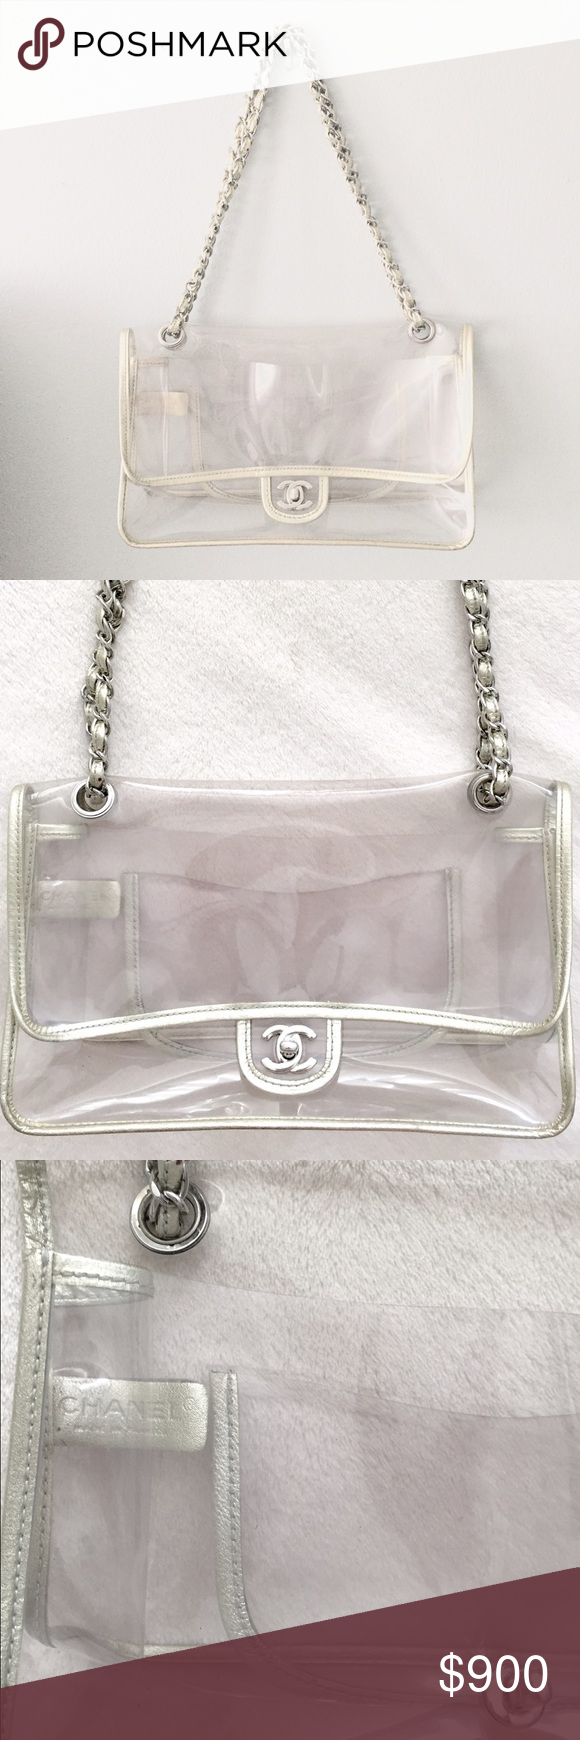 f2614d371231 CHANEL Clear Flap Bag Chanel transparent flap bag with silver metallic trim  and brushed silver hardware